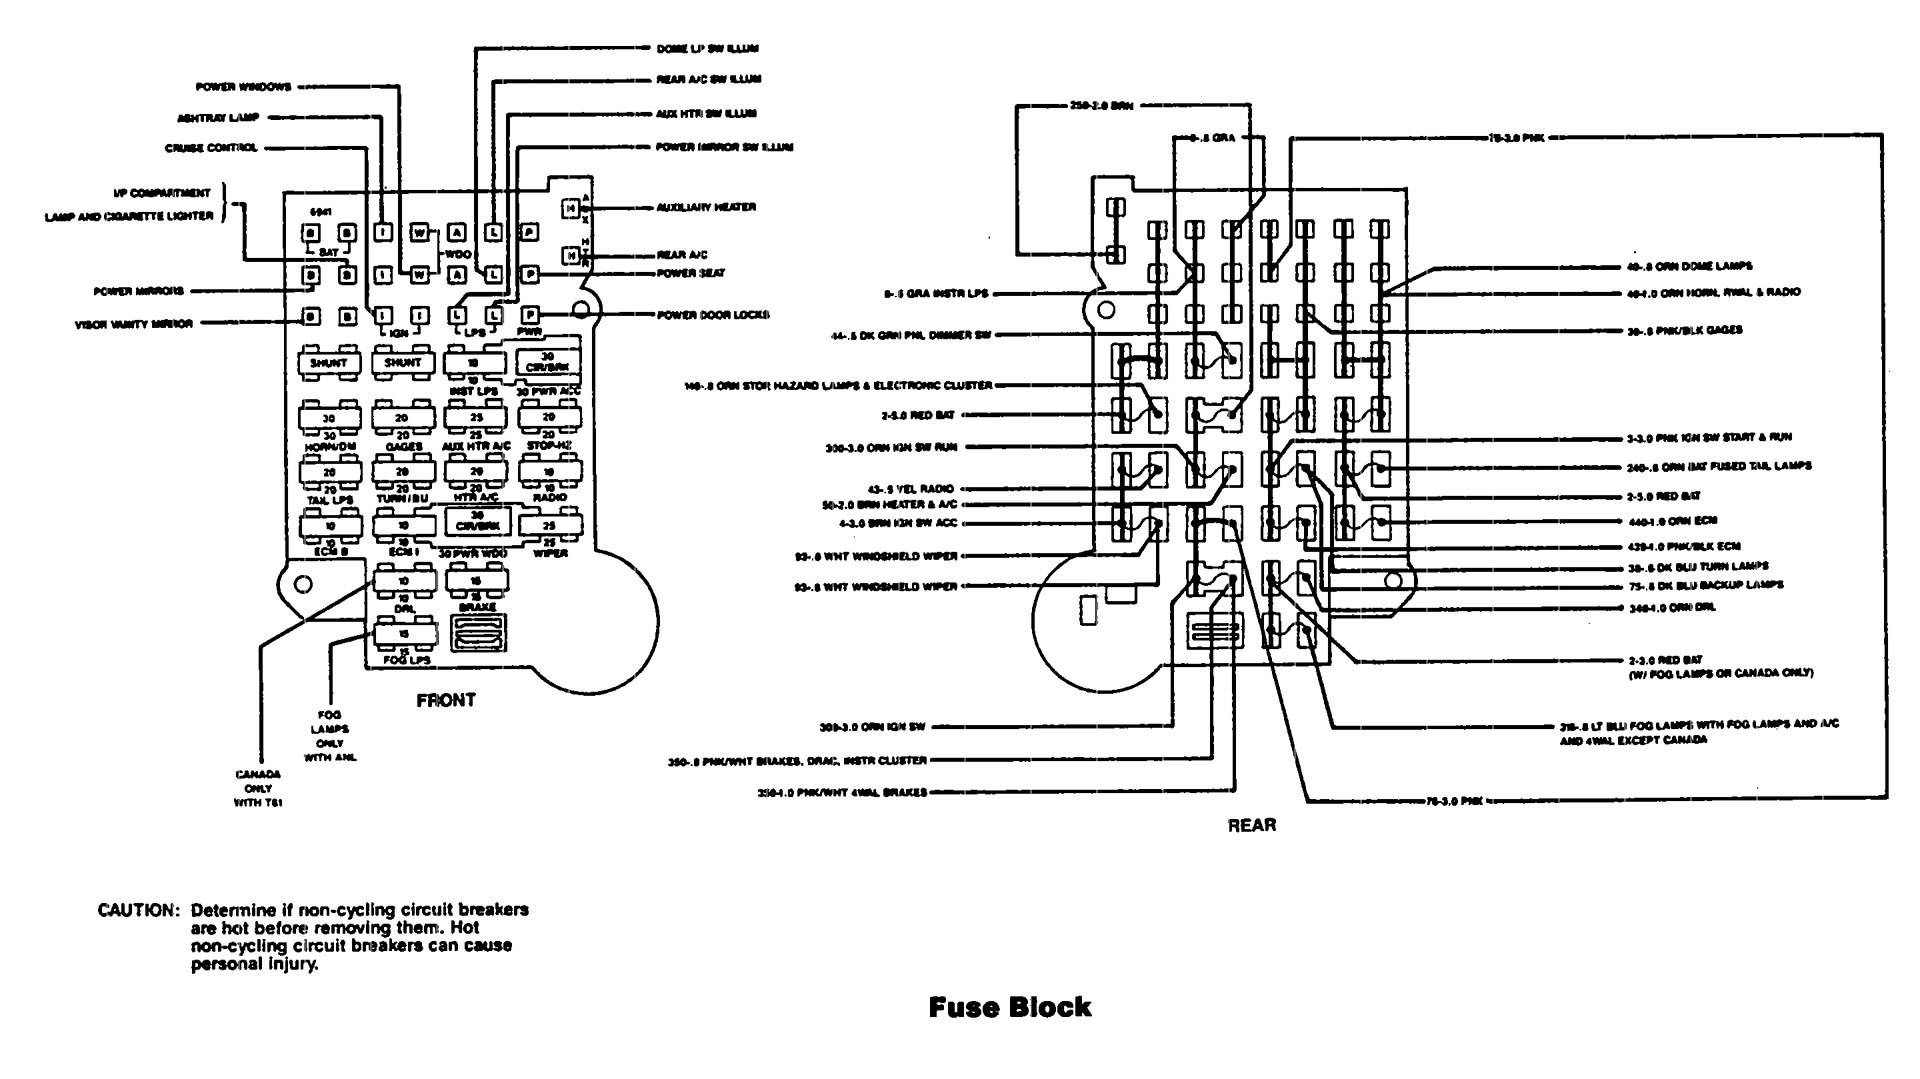 [WRG-9424] 1990 F350 Fuse Box Diagram